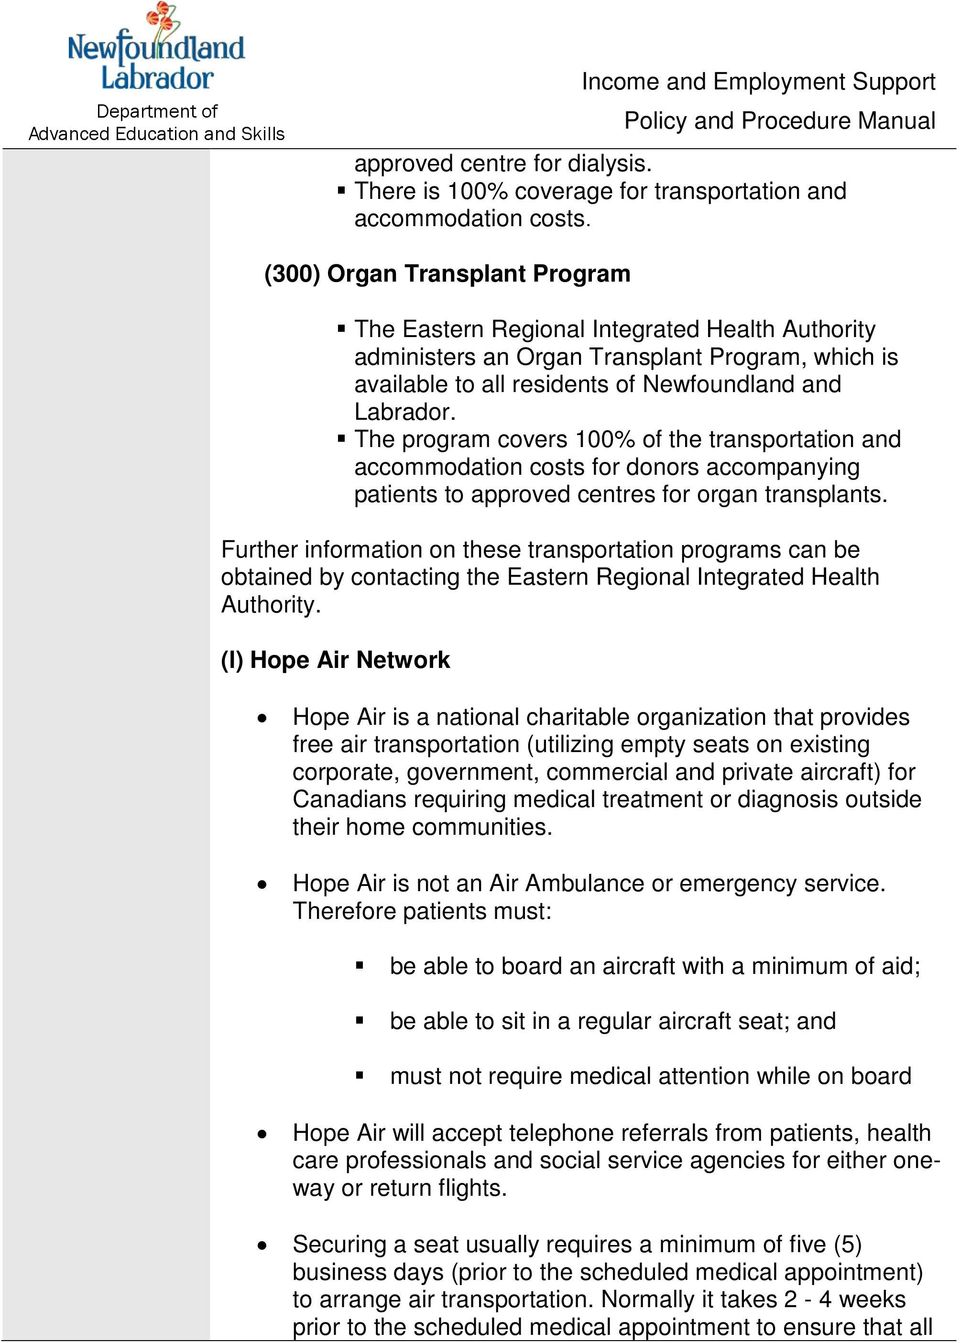 The program covers 100% of the transportation and accommodation costs for donors accompanying patients to approved centres for organ transplants.